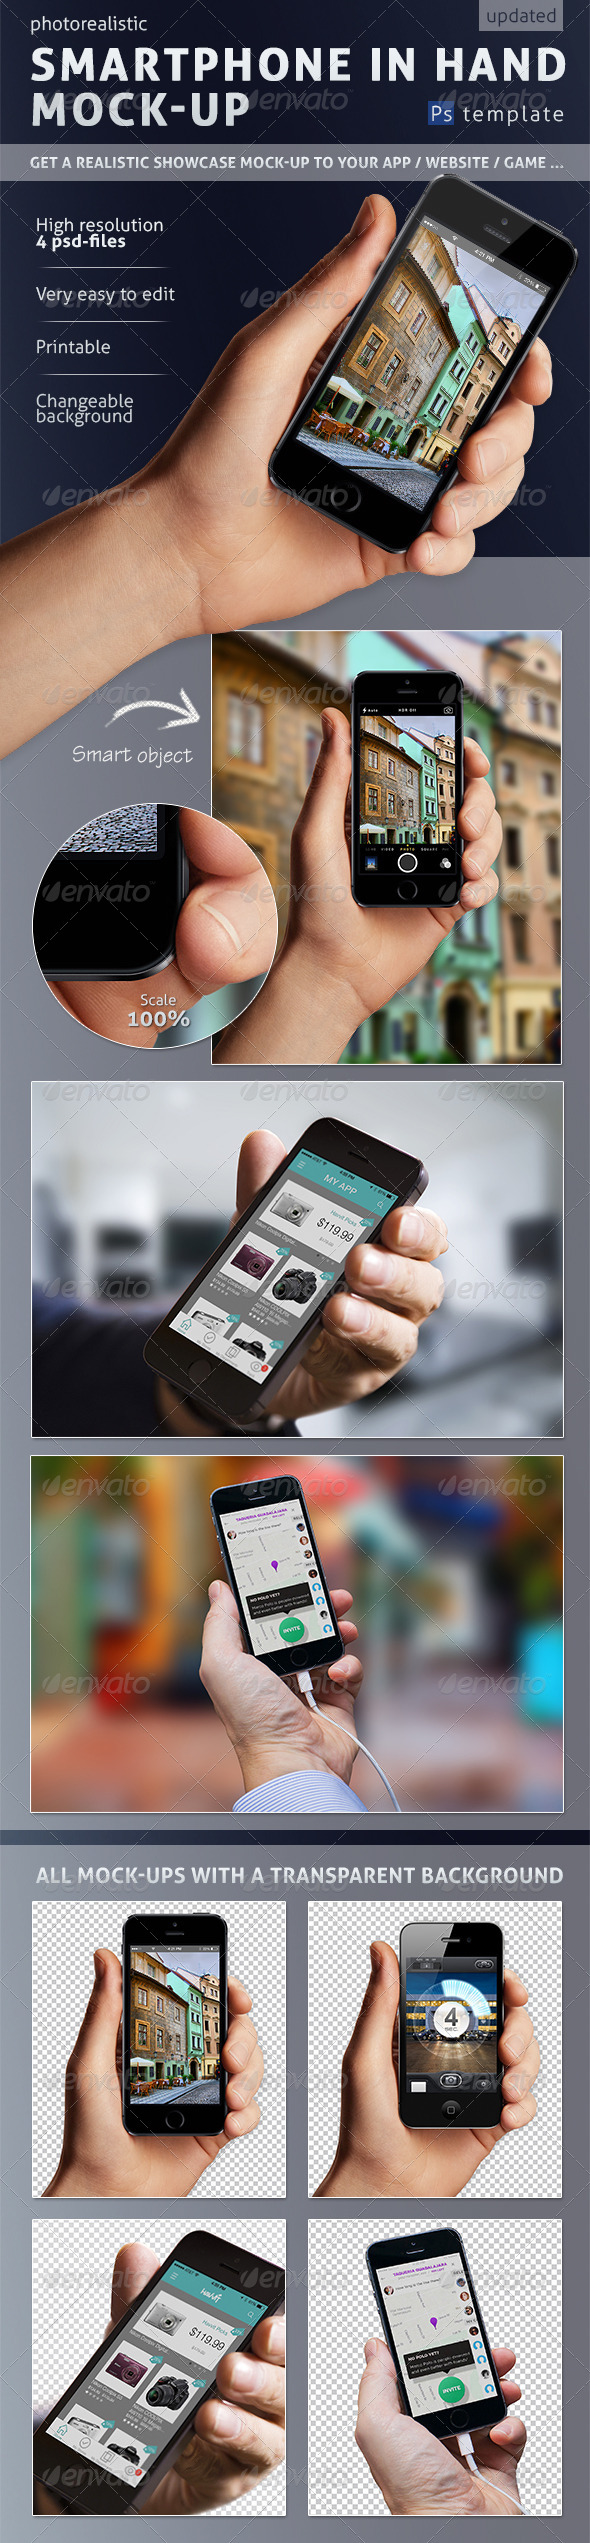 Mobile Phone in Hand Mock-up - Mobile Displays